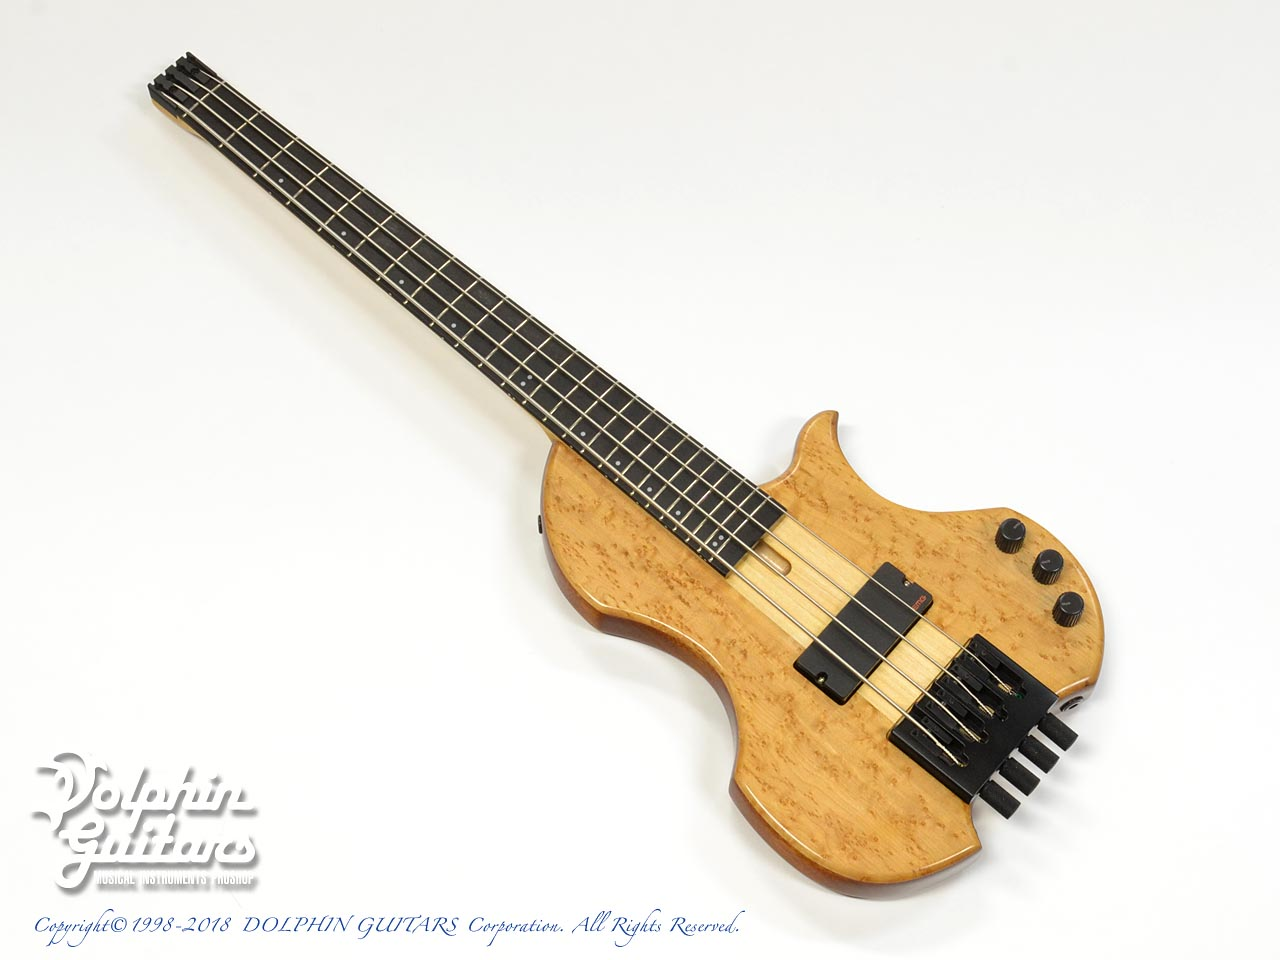 Charo's: CH-B4 Compact Headless Bass (Birdseye Maple & Mahogany) (0)